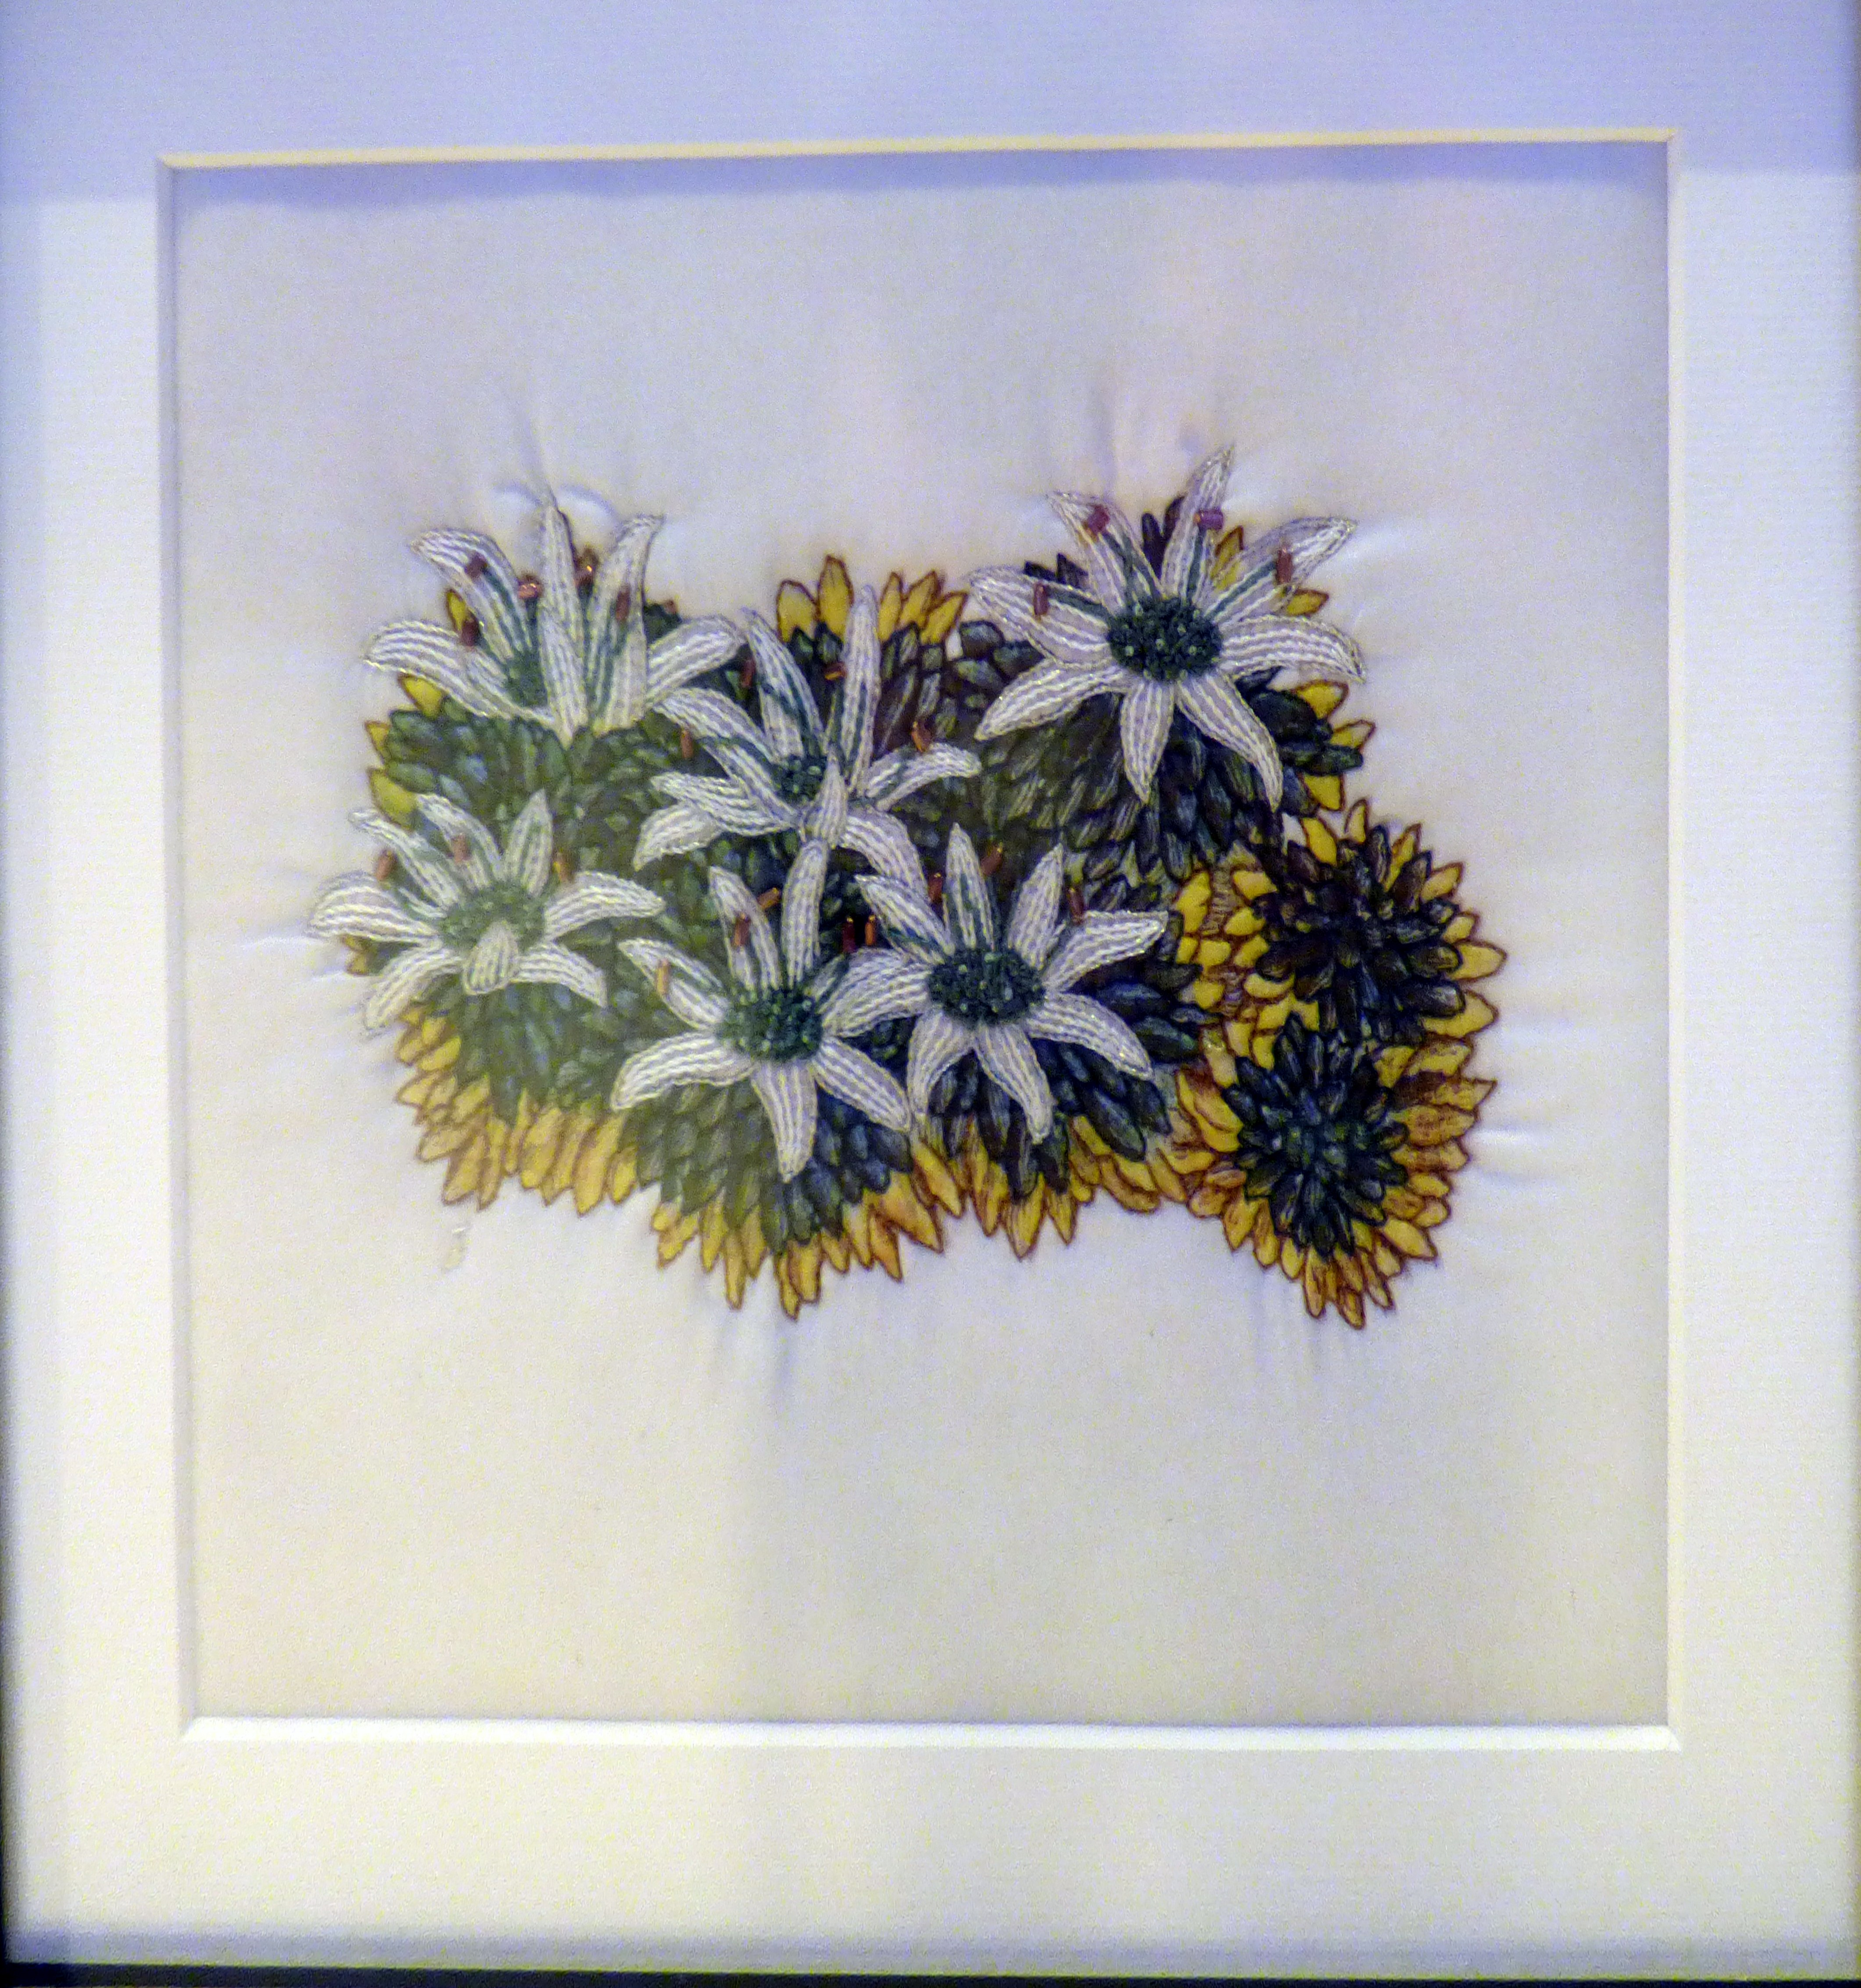 DONATIA FASCIRCULARIS by Ann Thyer, hand embroidery, Endeavour exhibition, Liverpool Cathedral, Sept 2018